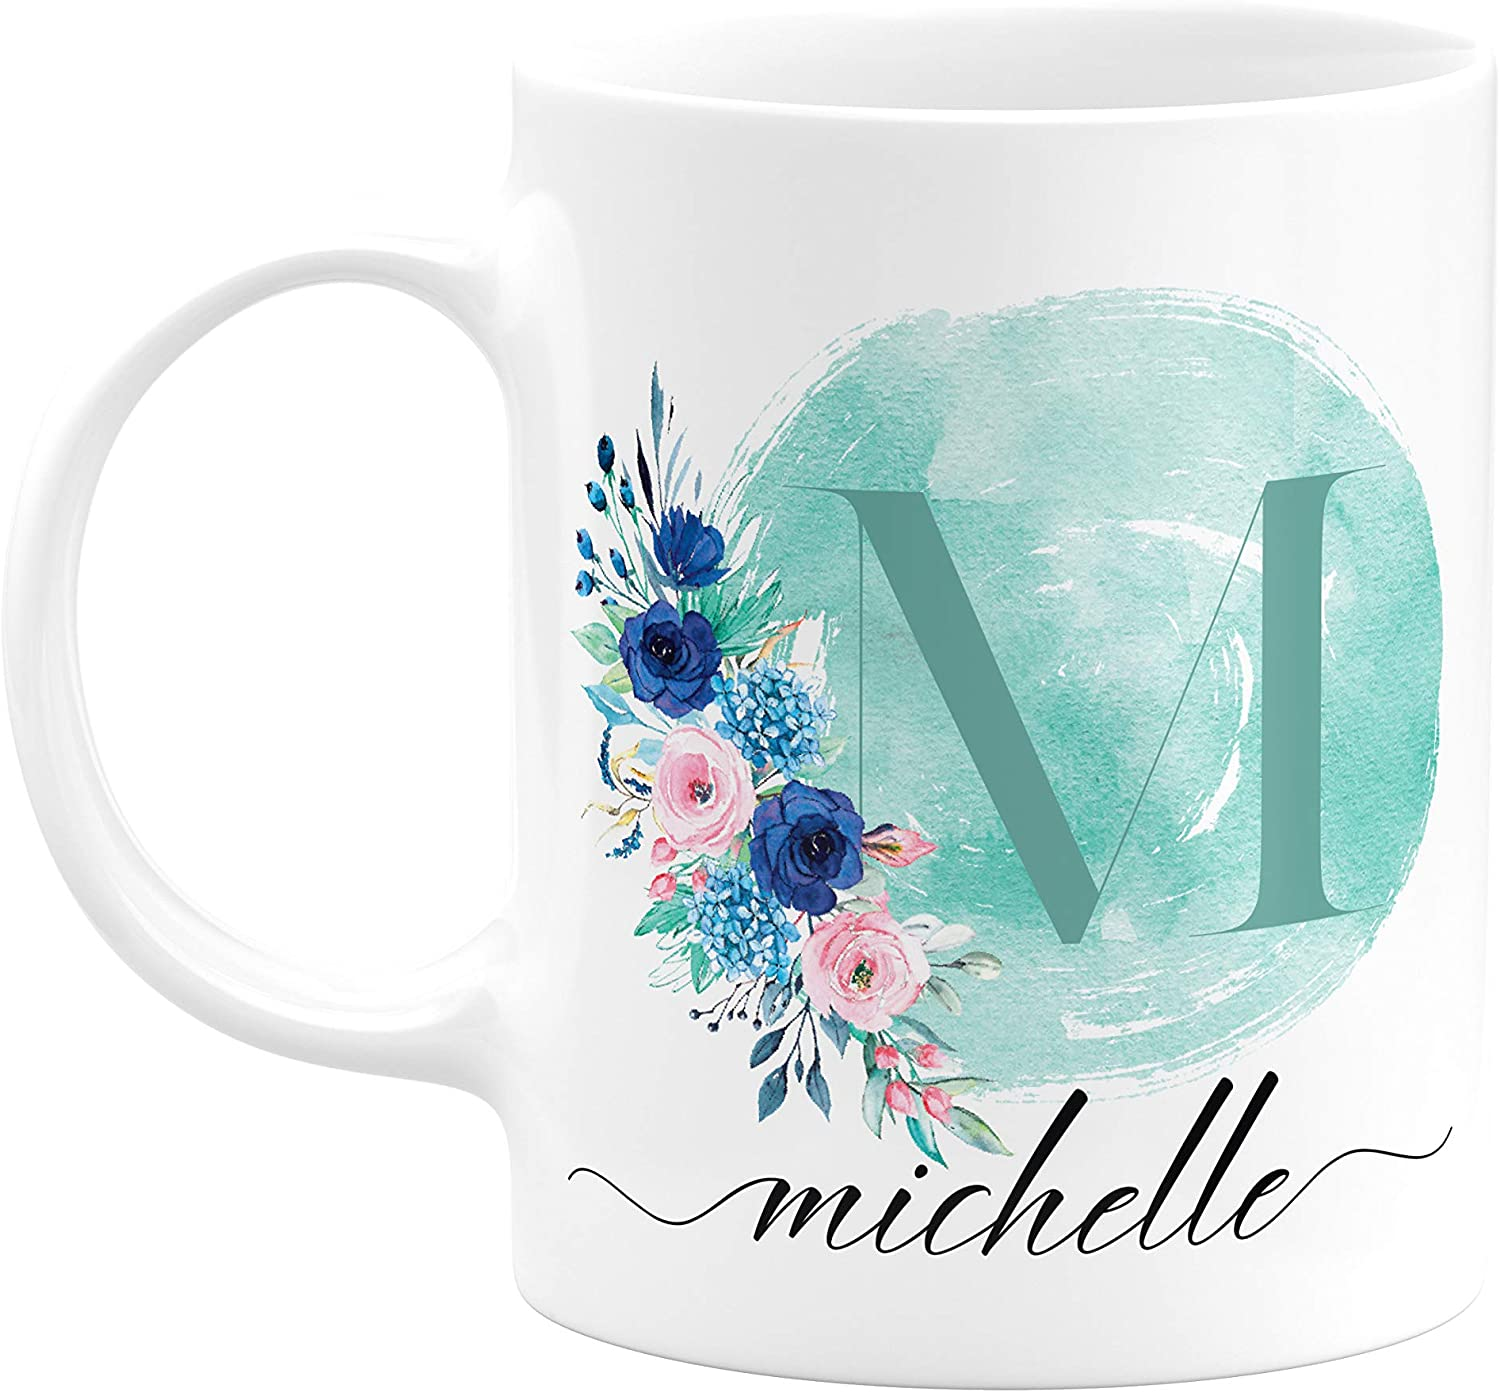 Personalized Name Initial Coffee Mug Monogrammed Best Friend Gift for Her